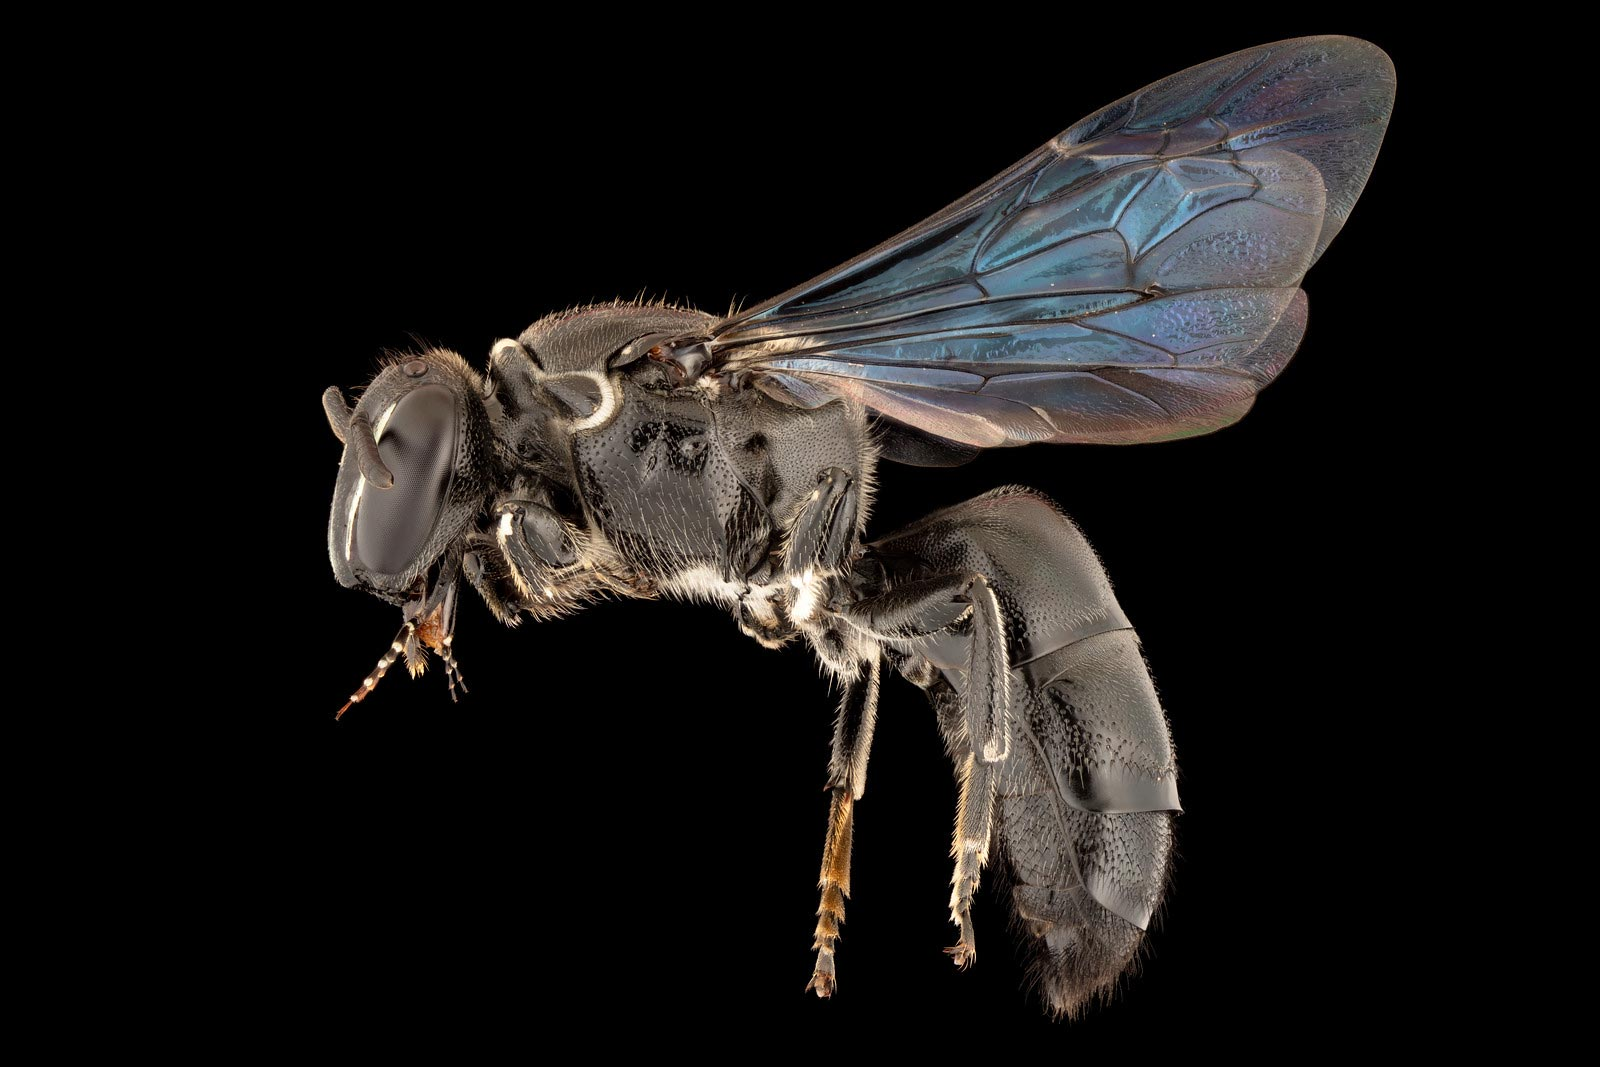 Rare Australian Native Bee Found After 100 Years